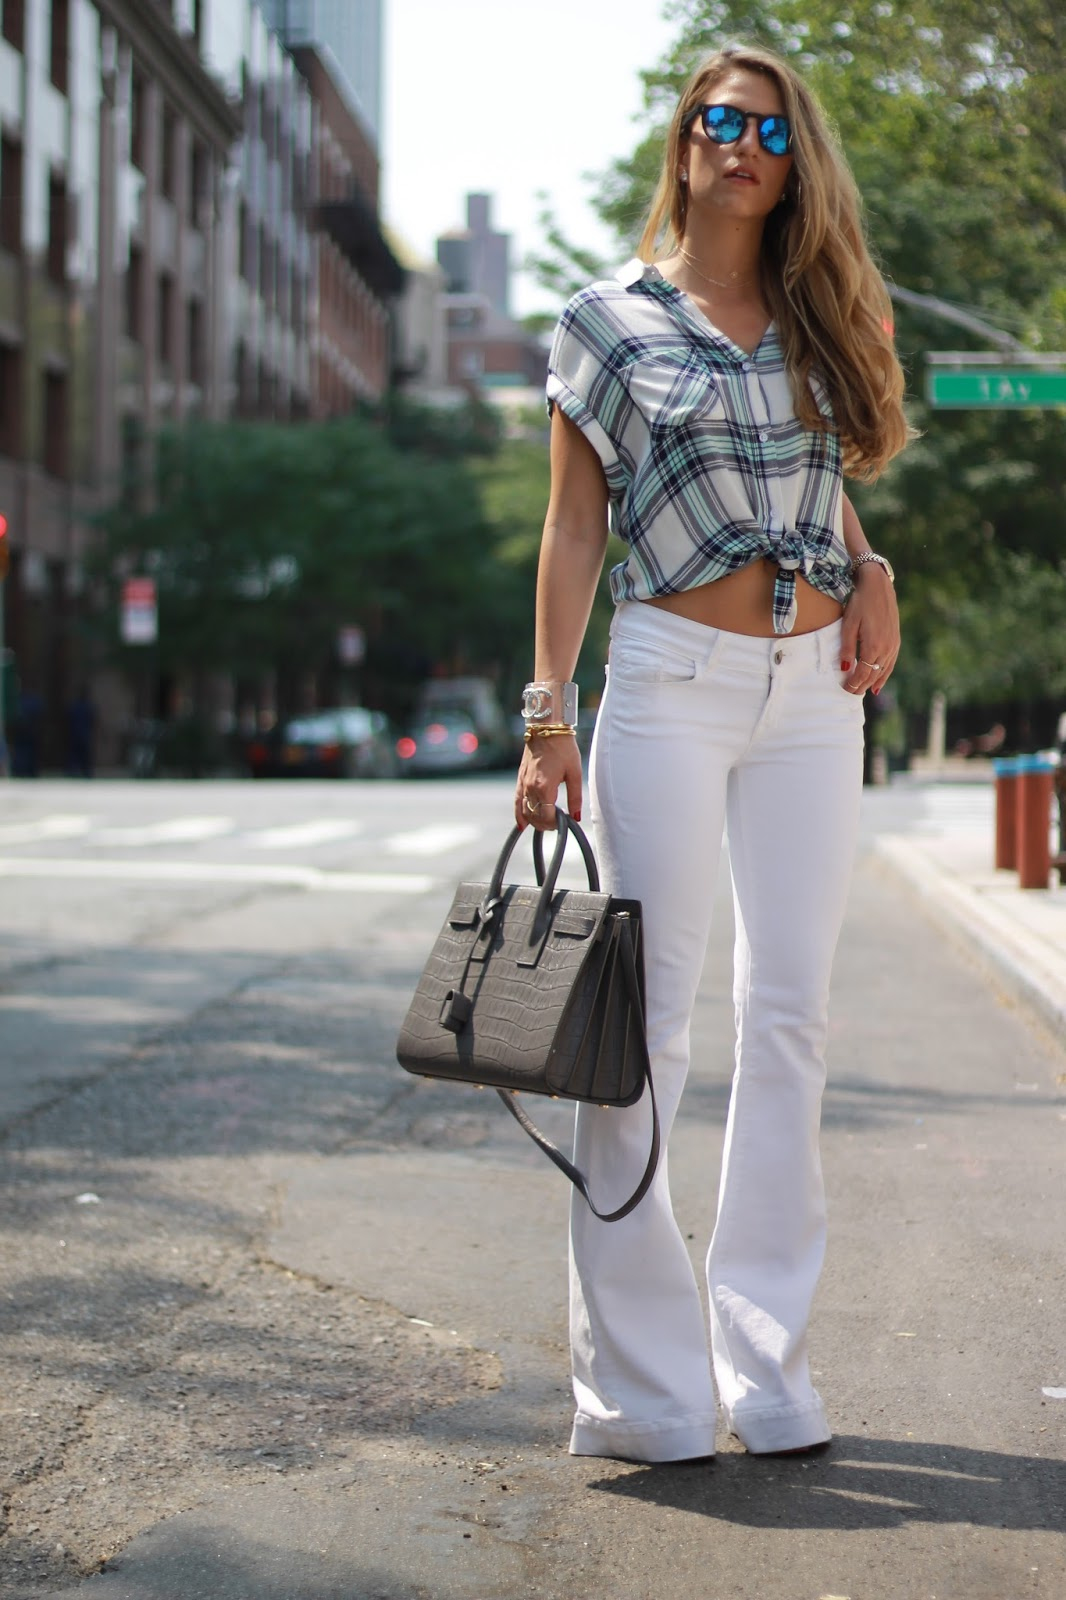 dressed for dreams in flare jeans trend, how to wear flares